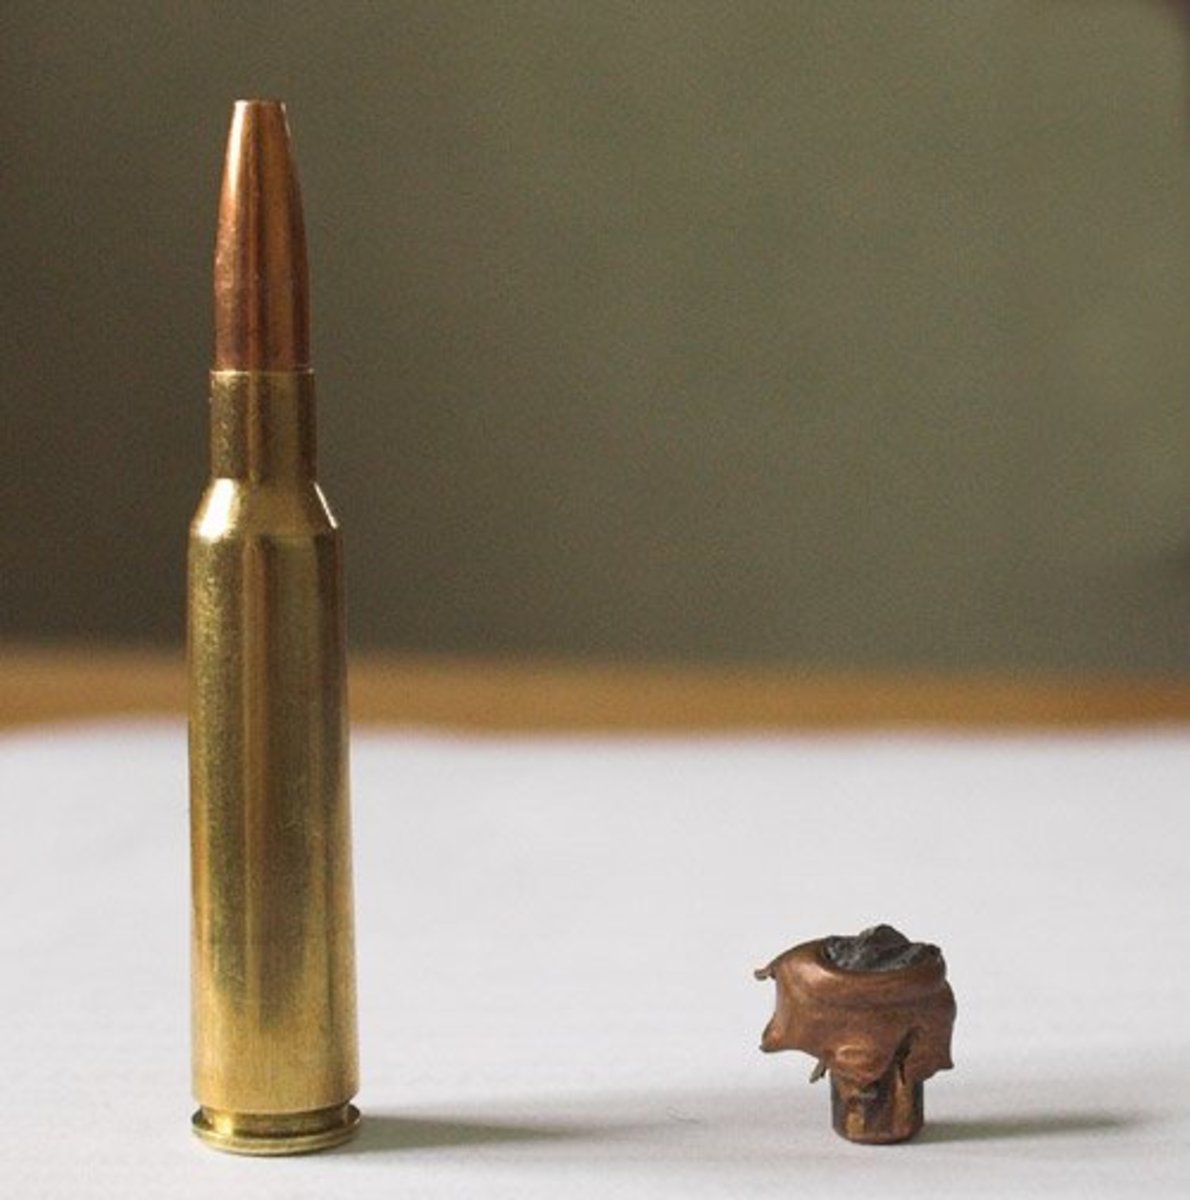 6.5x55 Swedish bullet recovered from a moose.